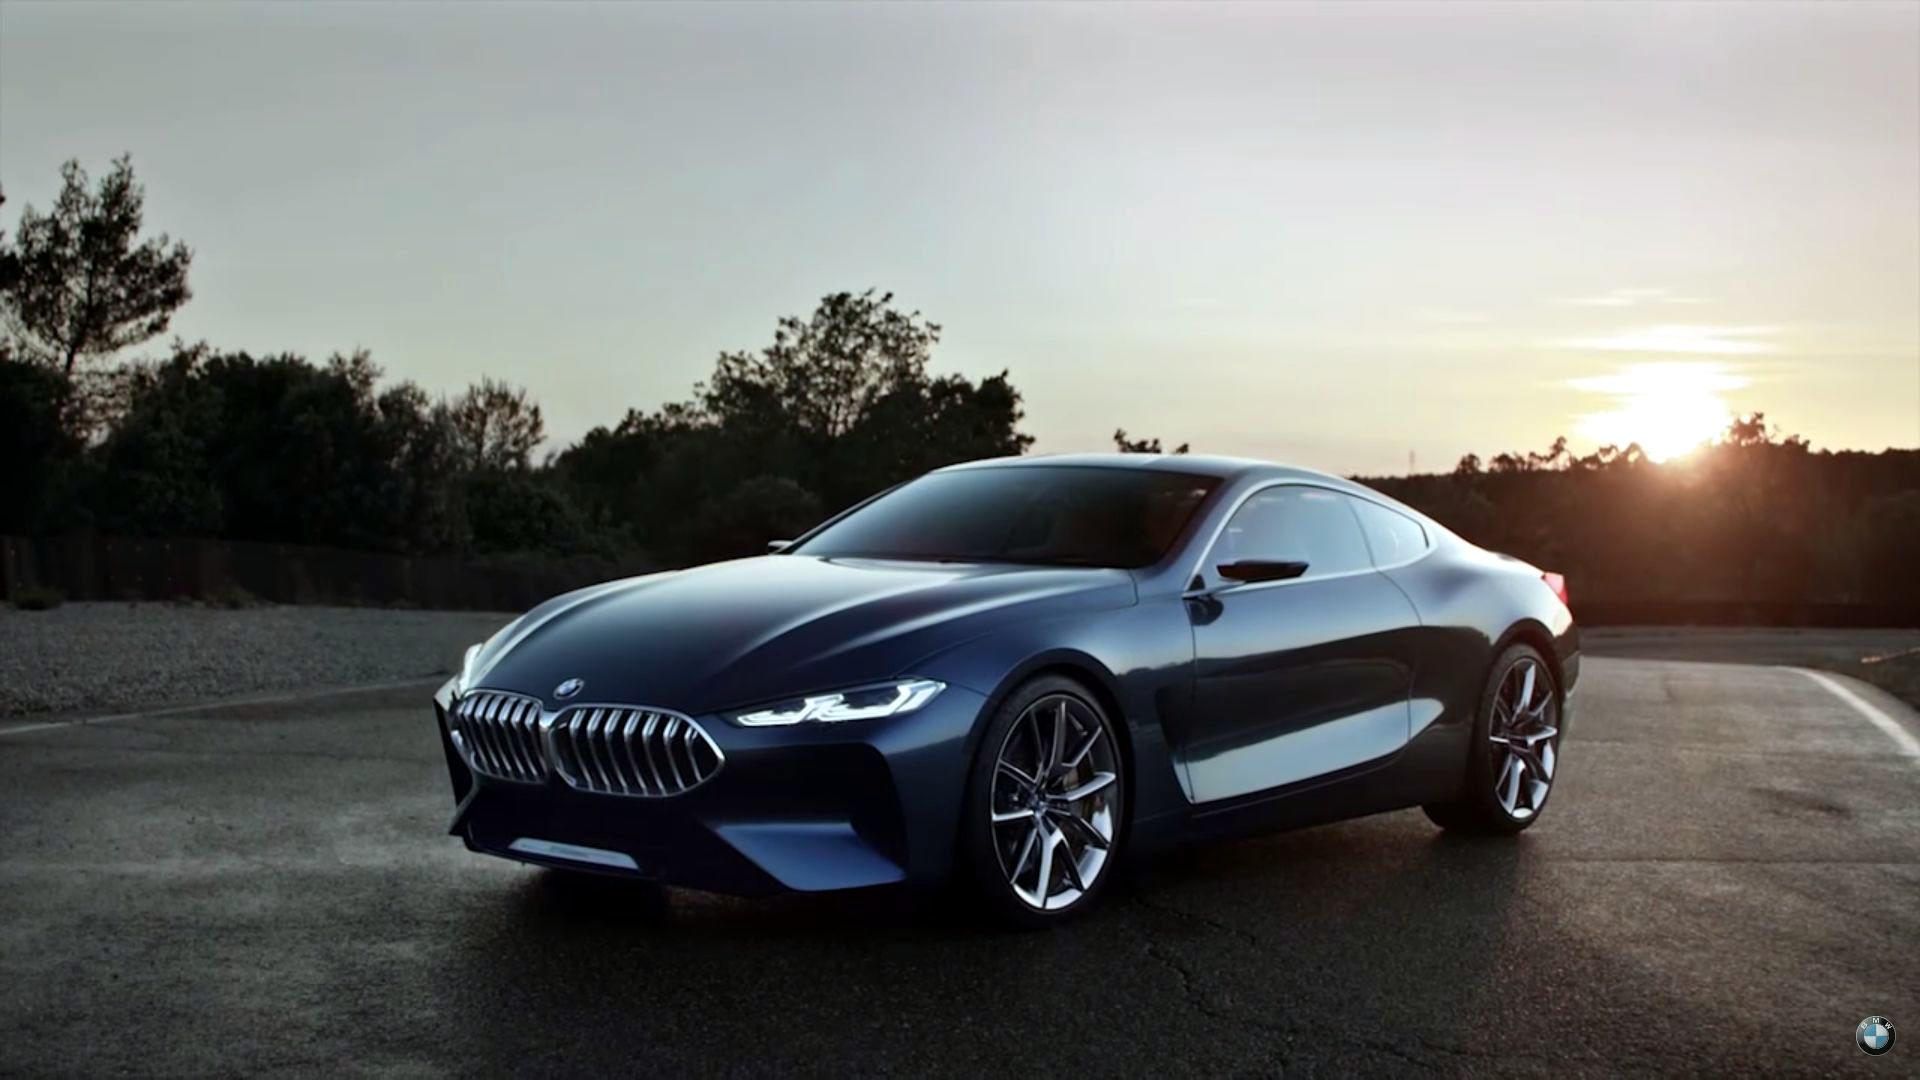 BMW 8 Series Wallpapers - Wallpaper Cave